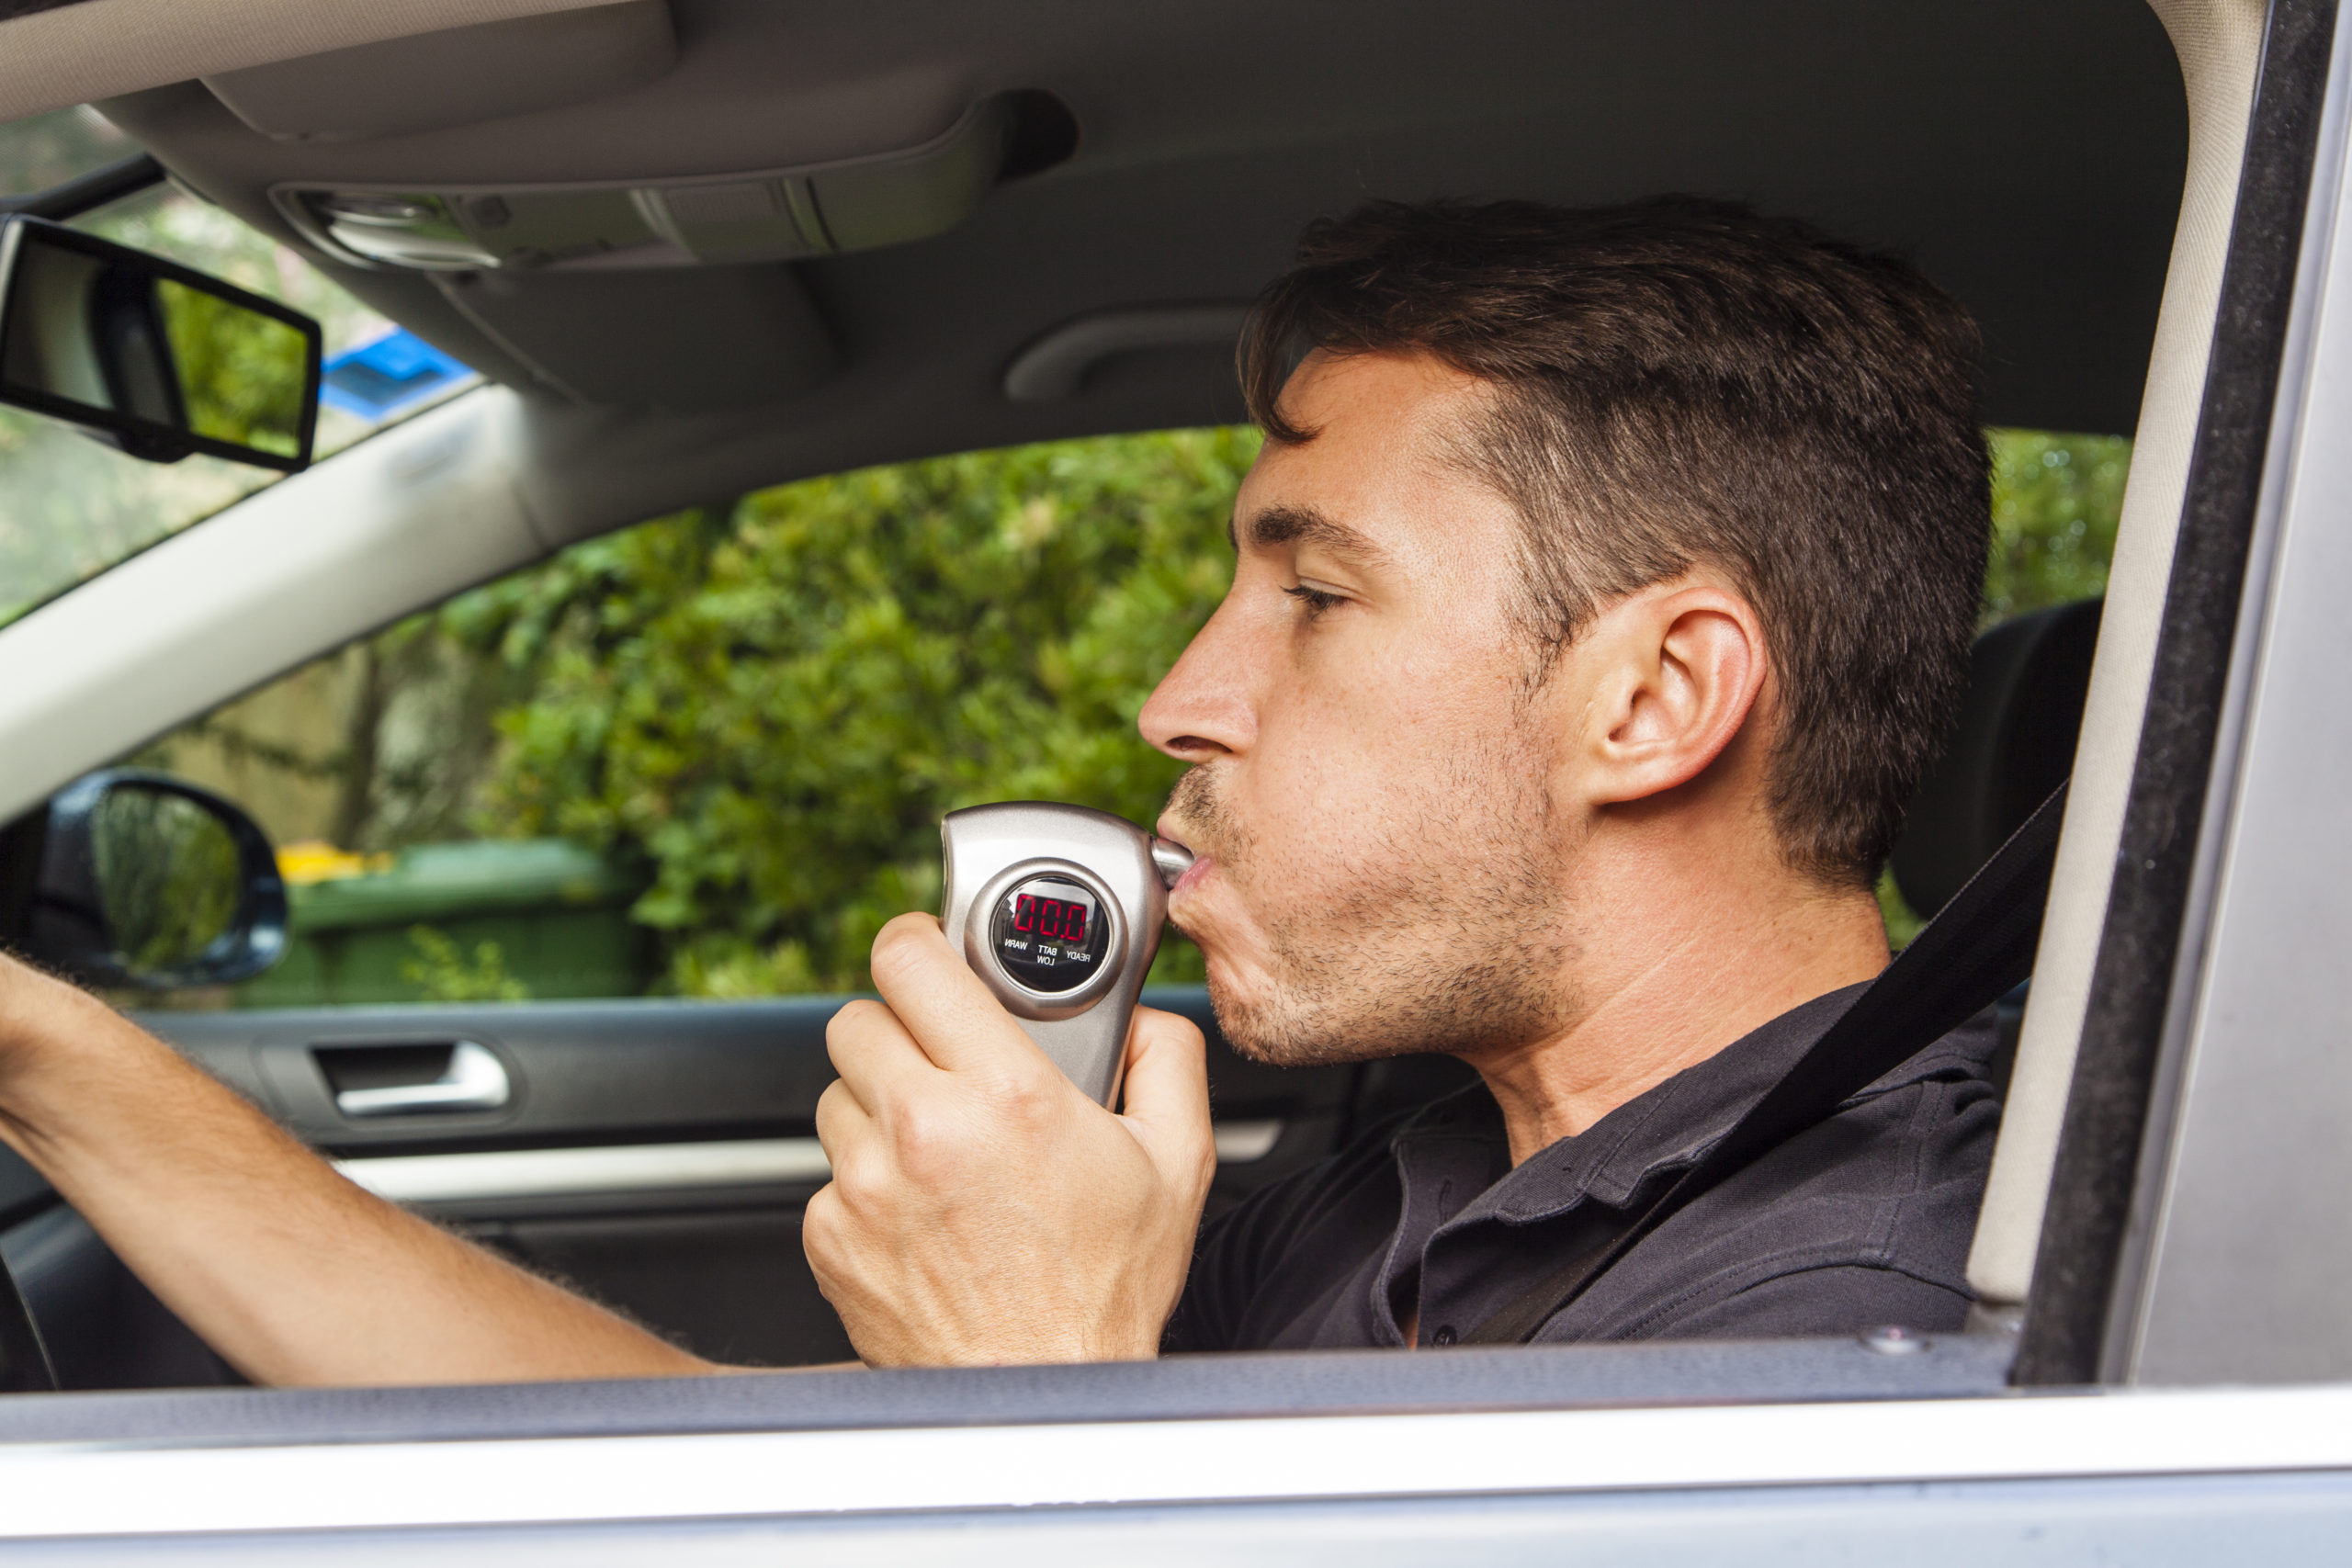 man sitting in car blows into breathalyzer - infrastructure bill aims to reduce drunk driving